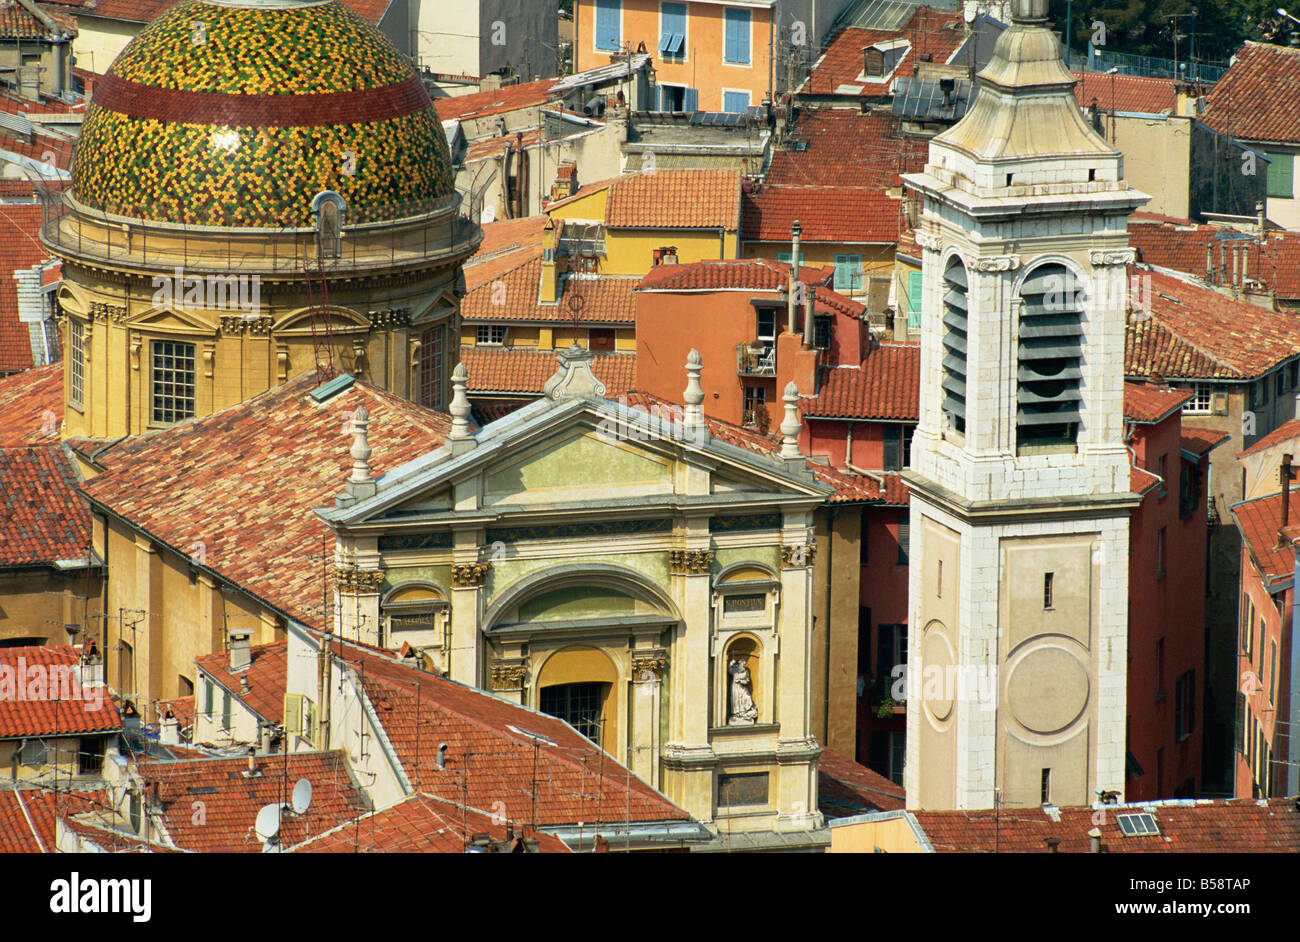 Old Town, Nice, Alpes Maritimes, Provence, France, Europe - Stock Image